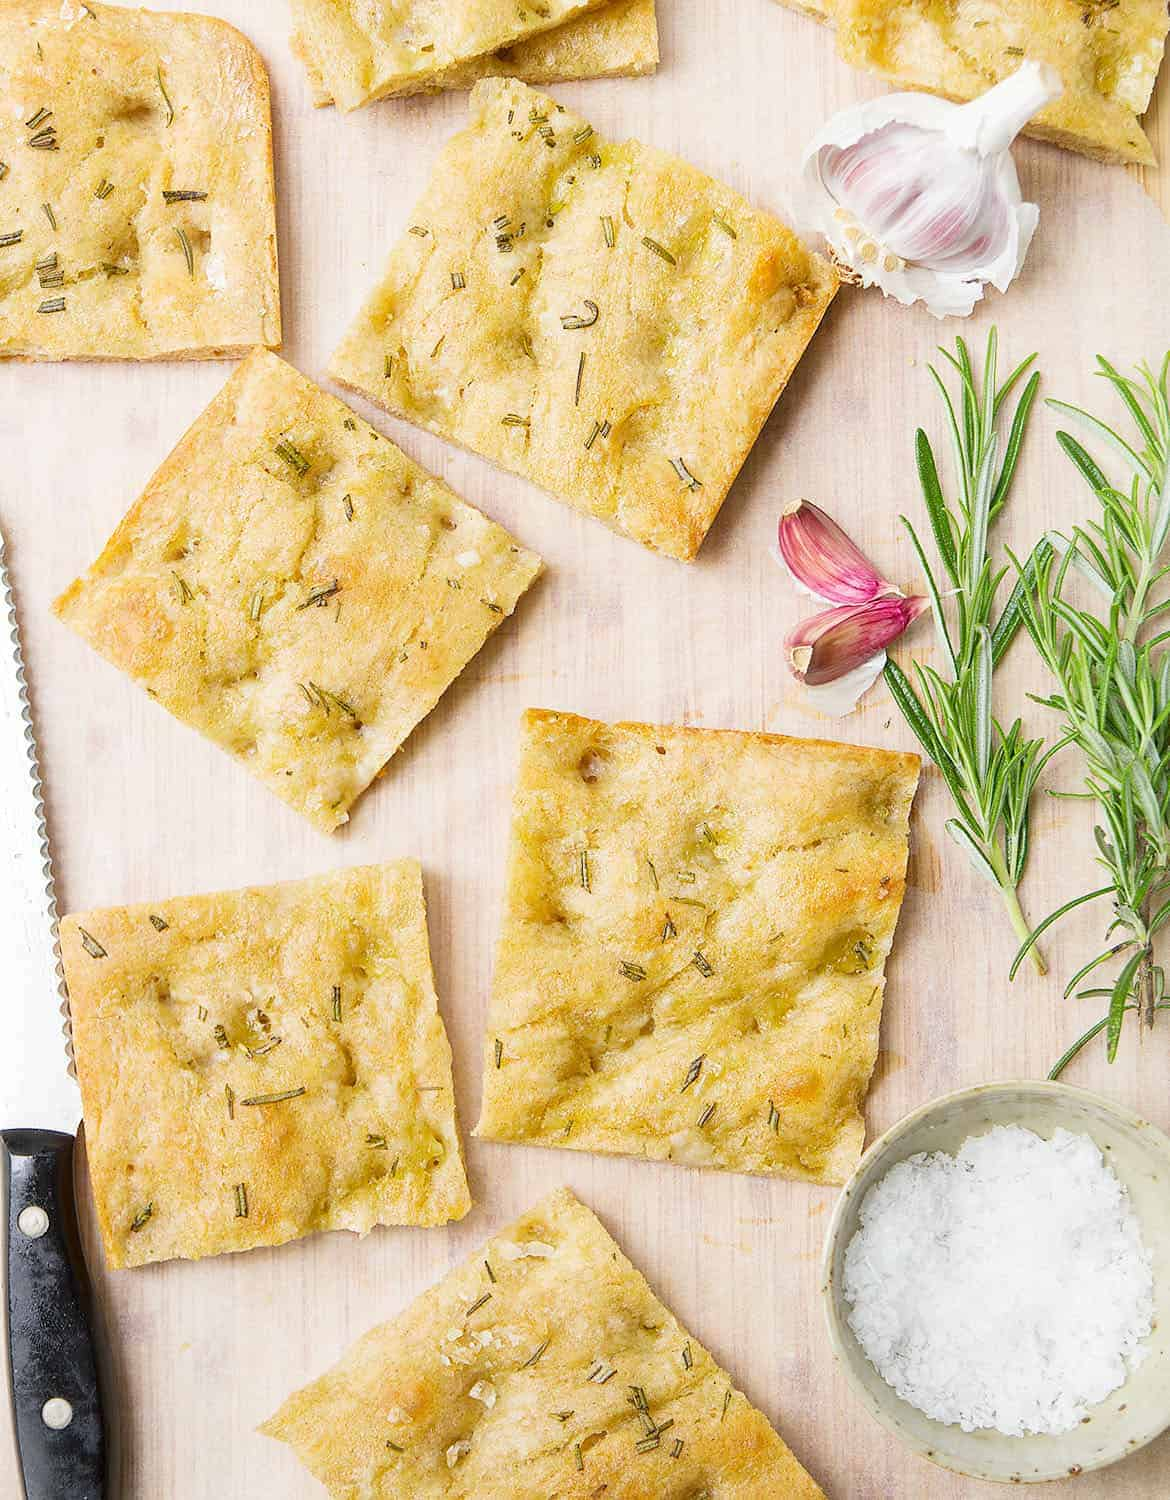 Slices of Italian focaccia on a chopping board with rosemary sprigs and garlic cloves.